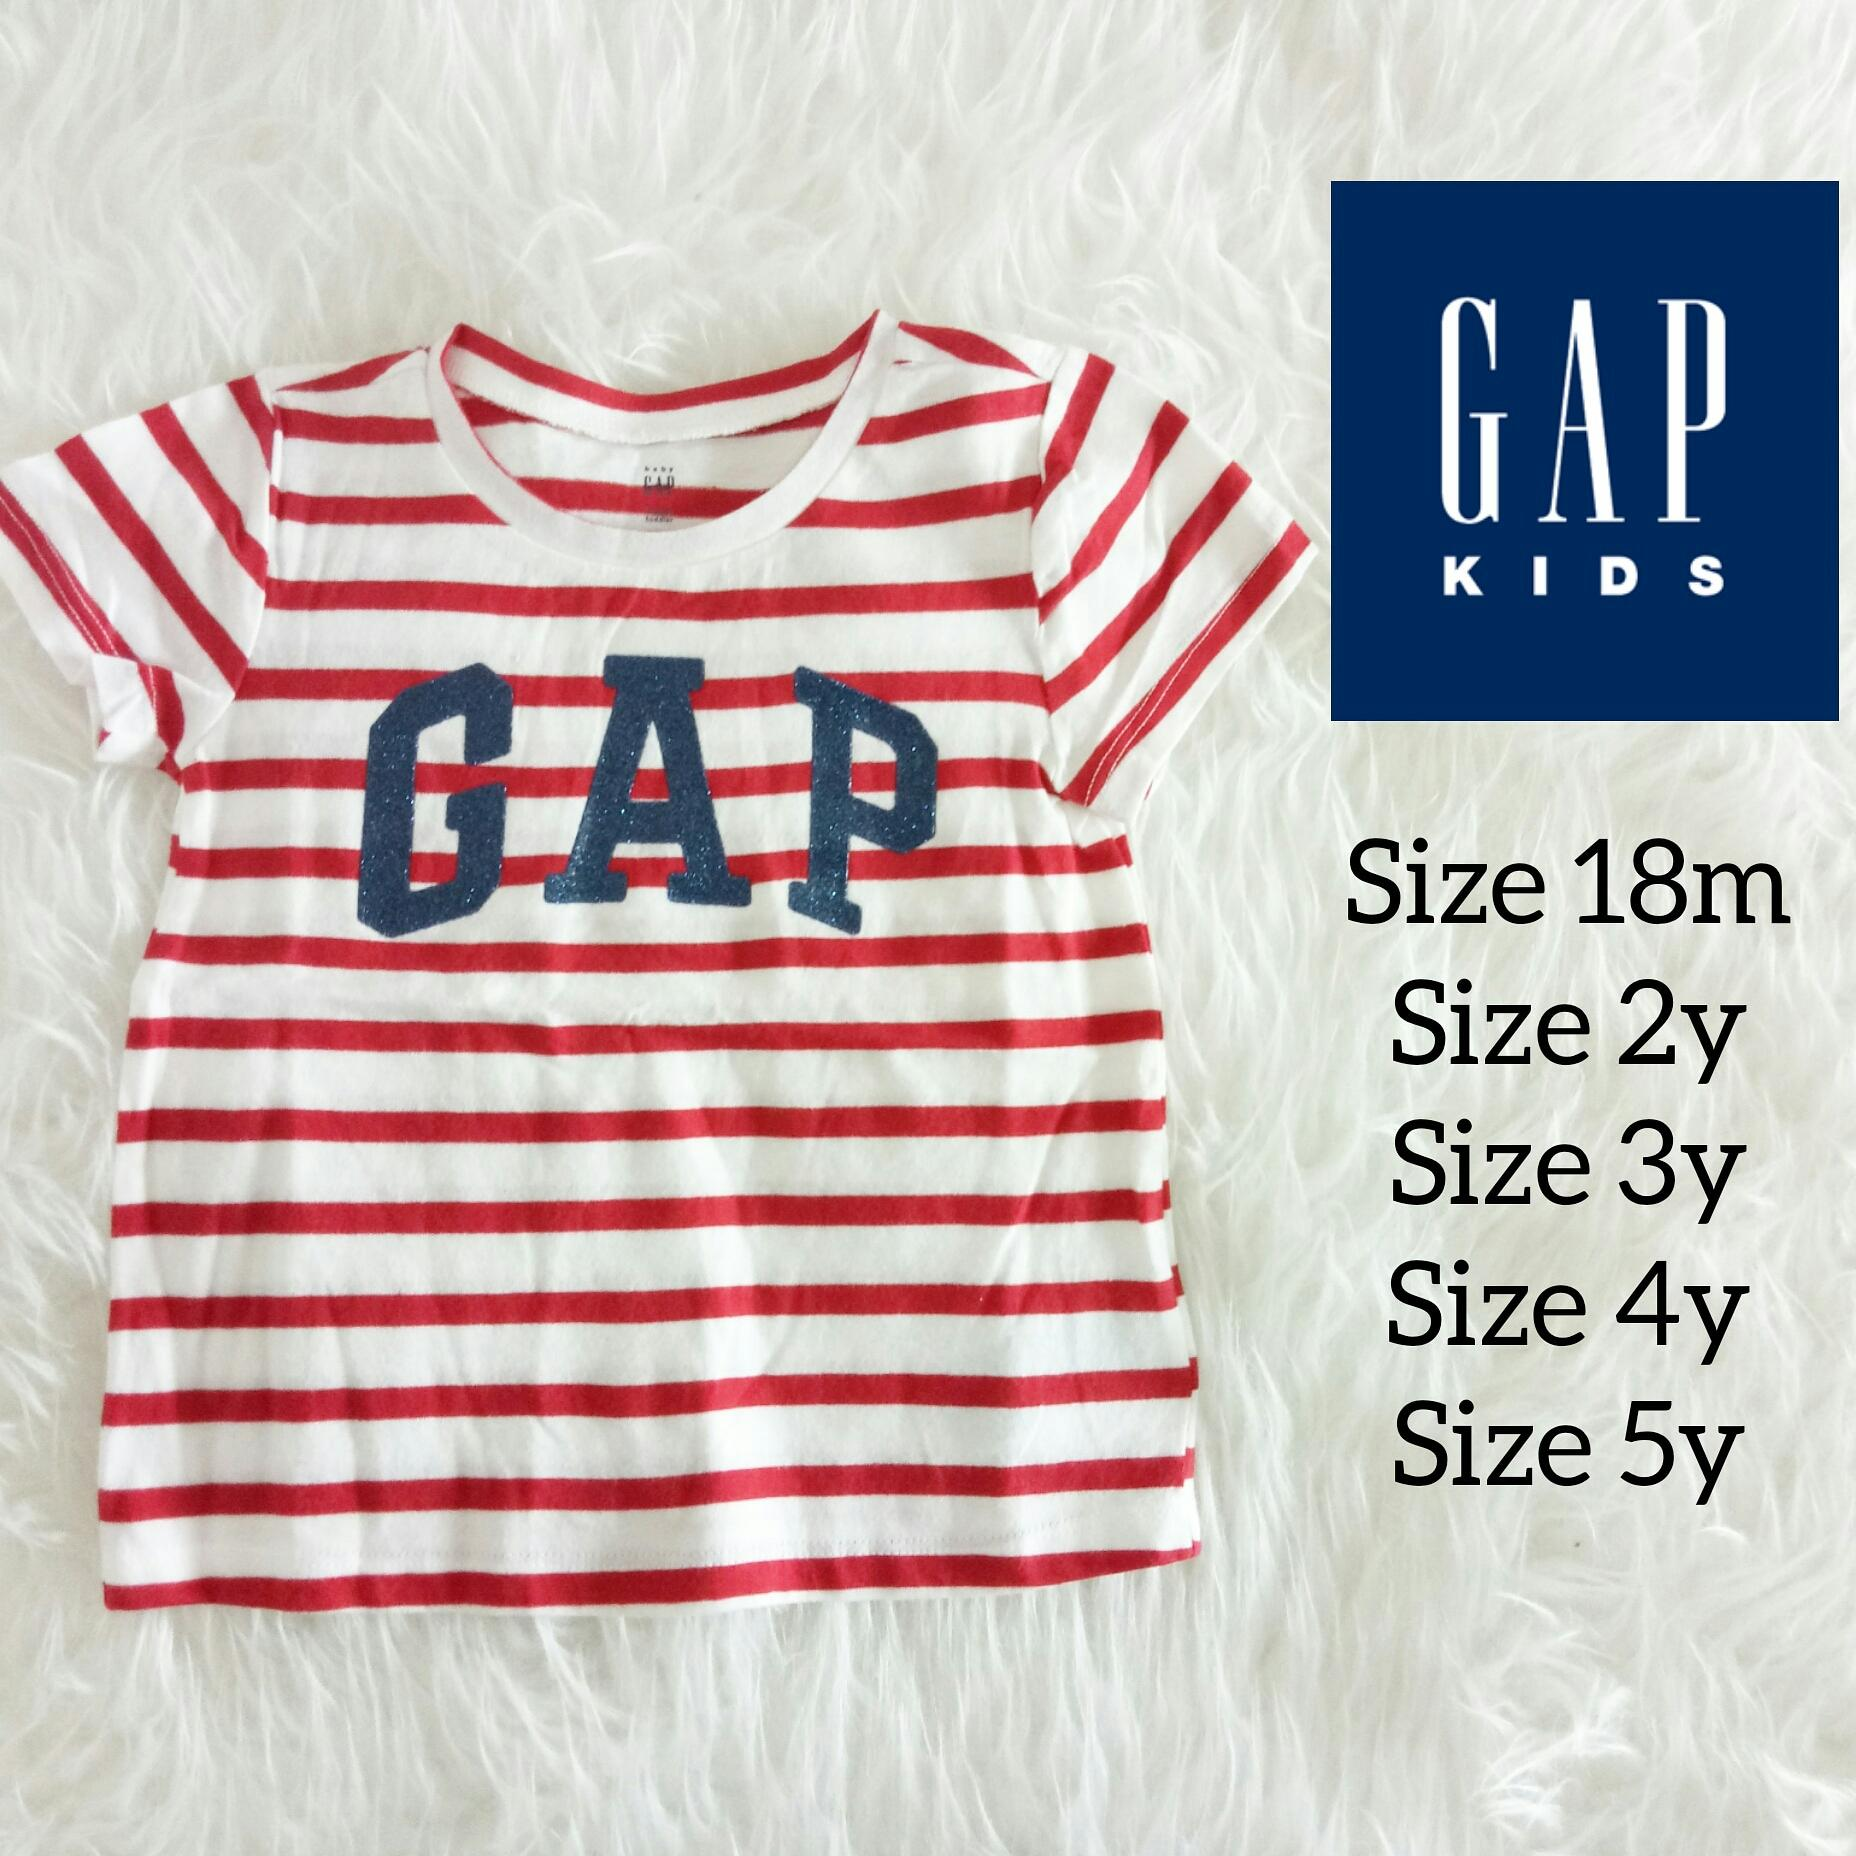 Buy Sell Cheapest Promo Gap Tee Best Quality Product Deals Kaos Snow Stripe Size 18m 5y